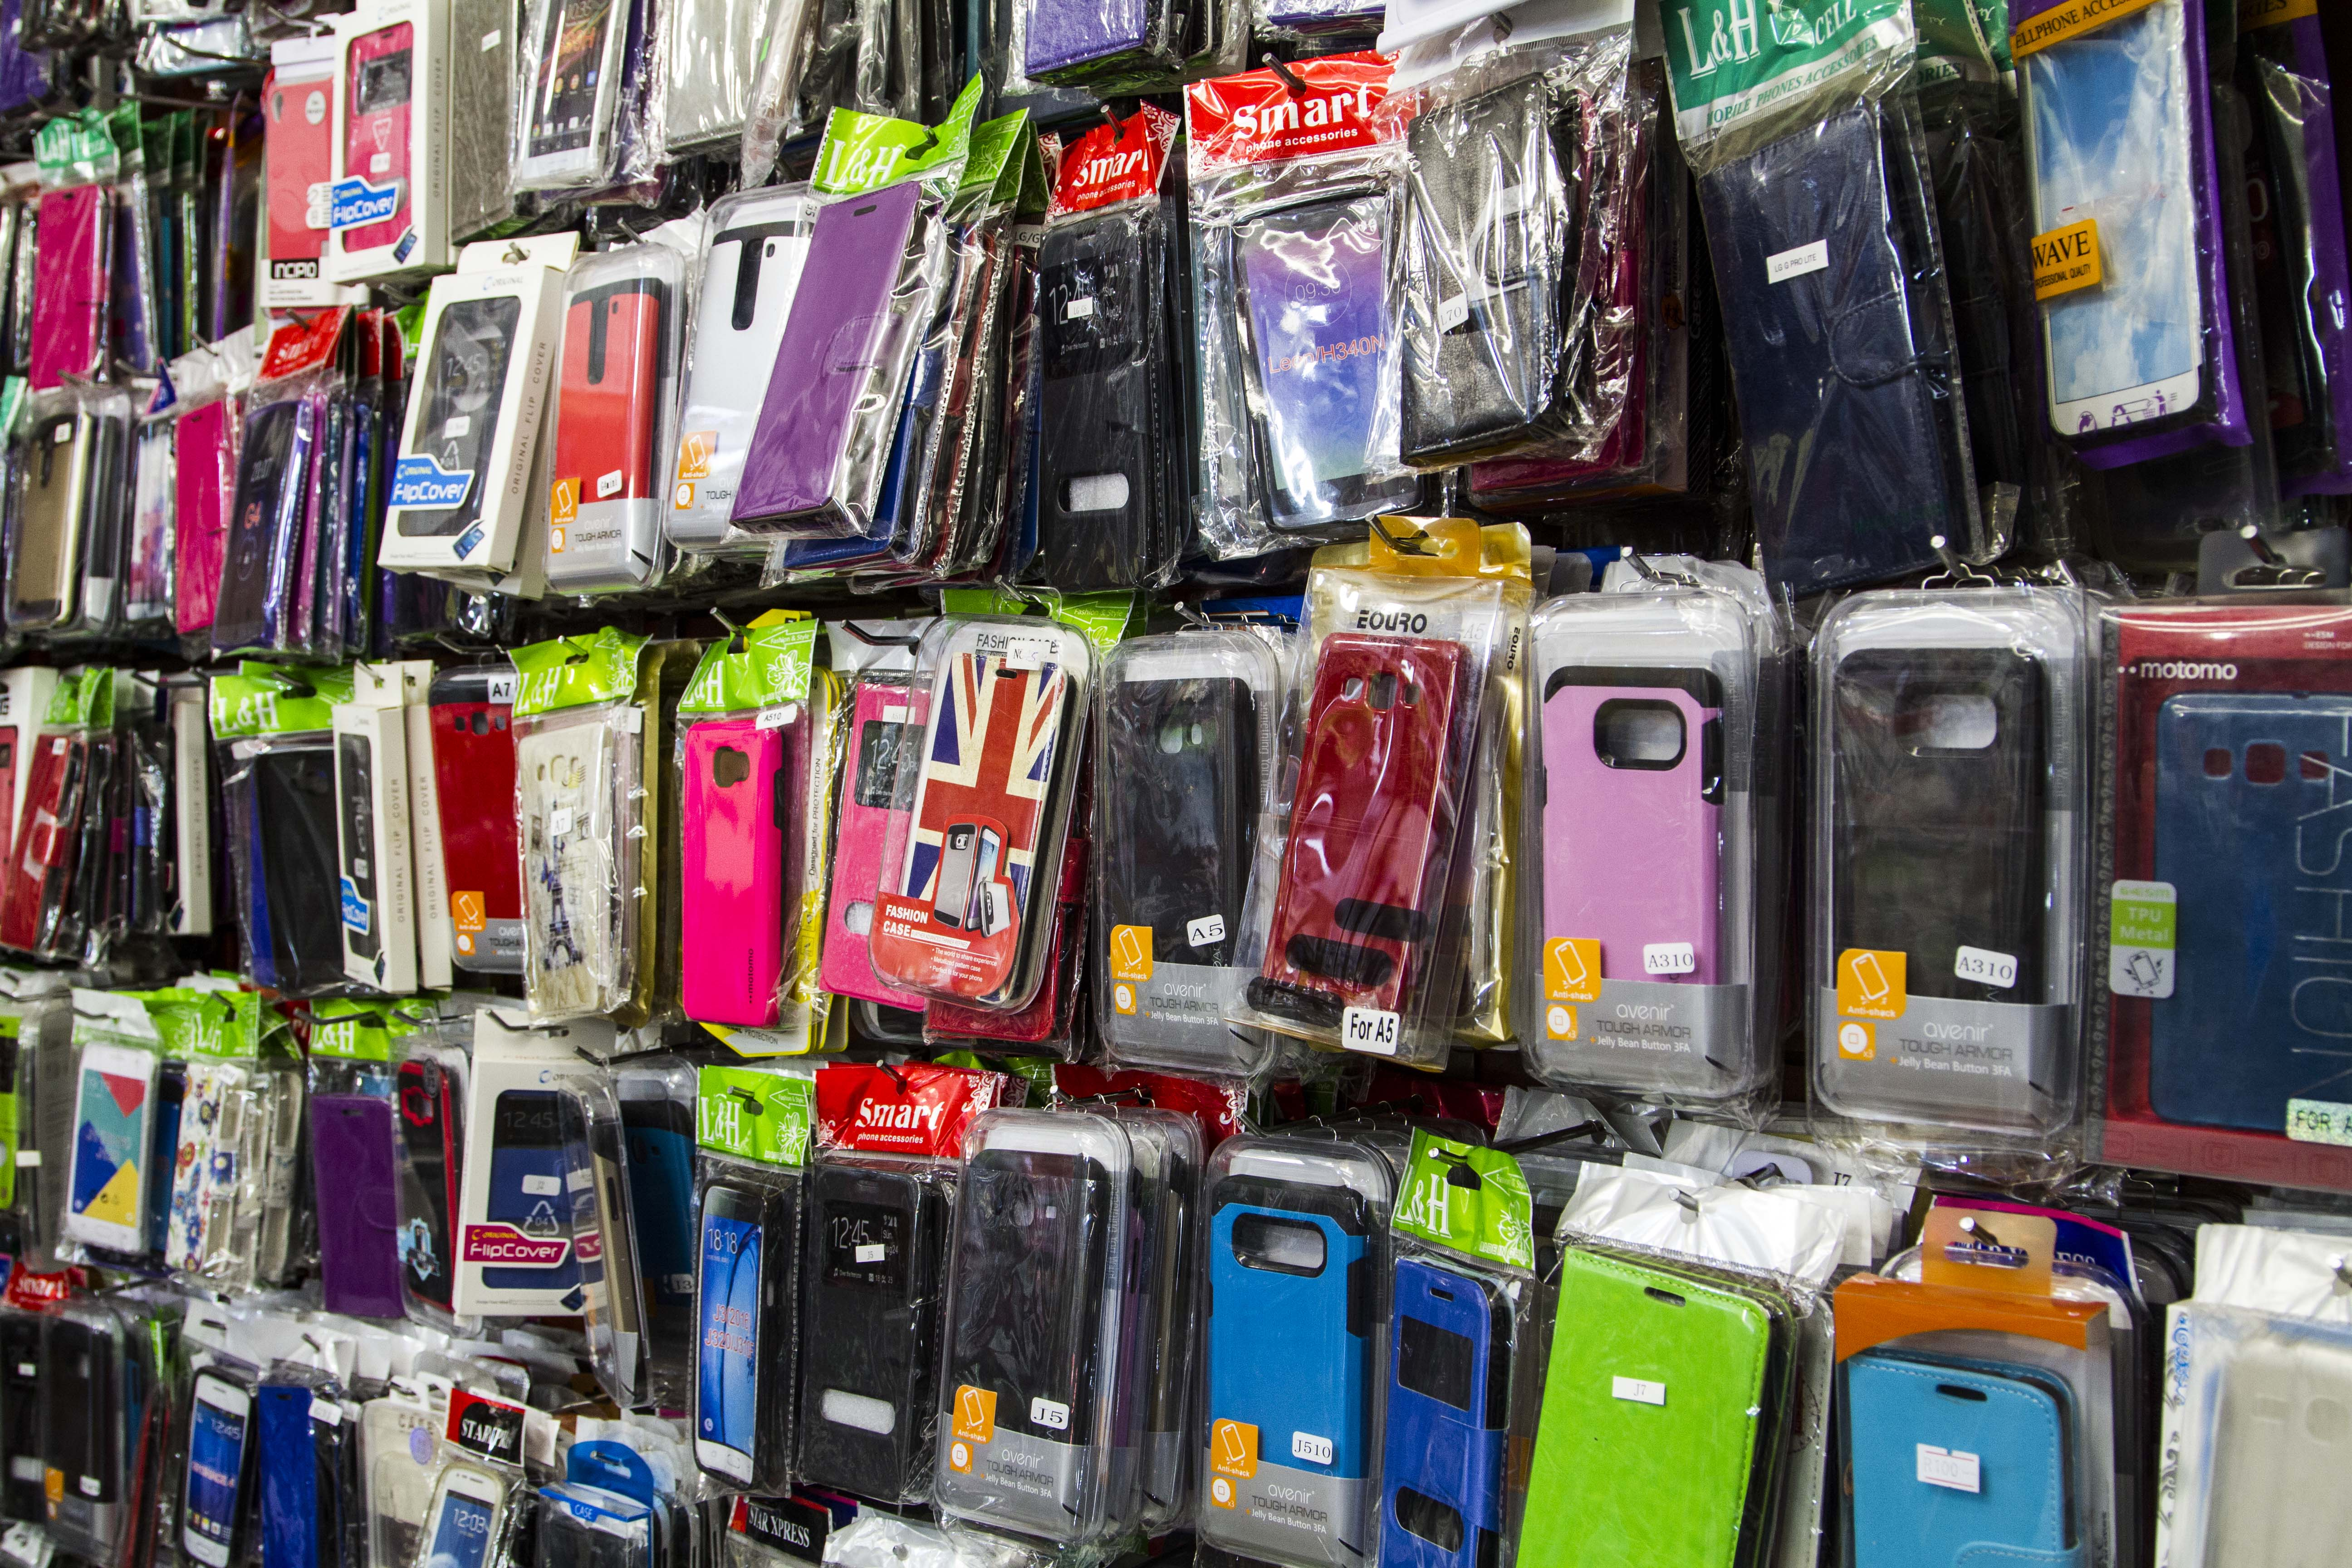 Montana Family Market_Alibaba Cell Phone Shop_various sizes and styles of phone cases